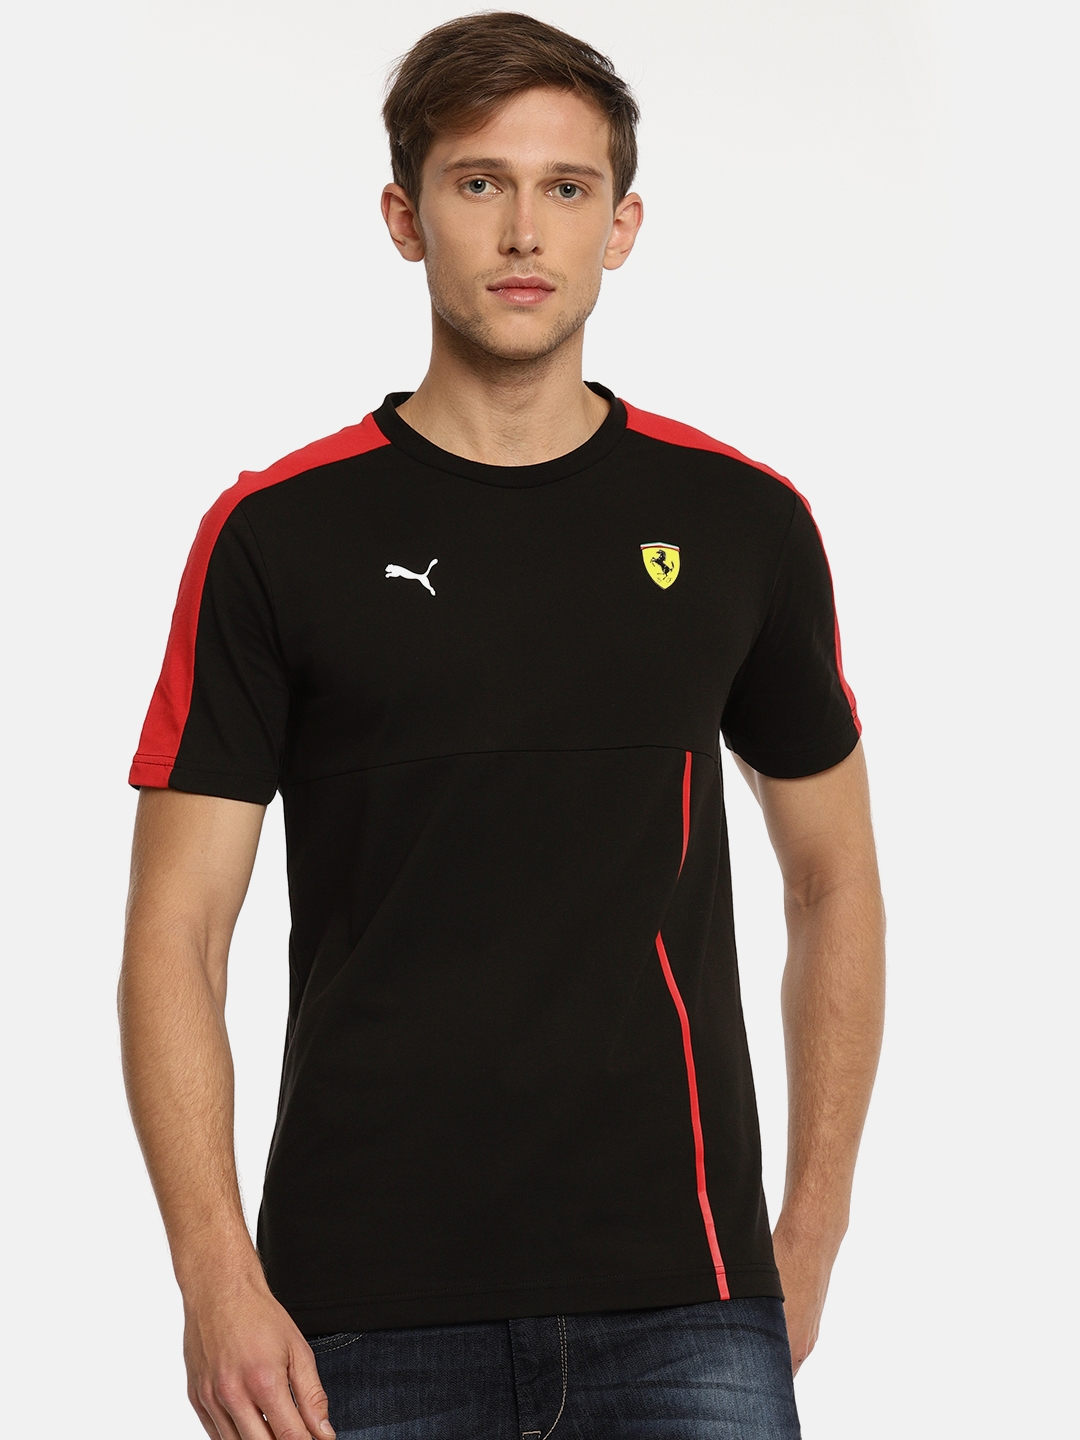 Black Puma T Ferrari Sf Solid Men T7 Shirt bgY76yvf